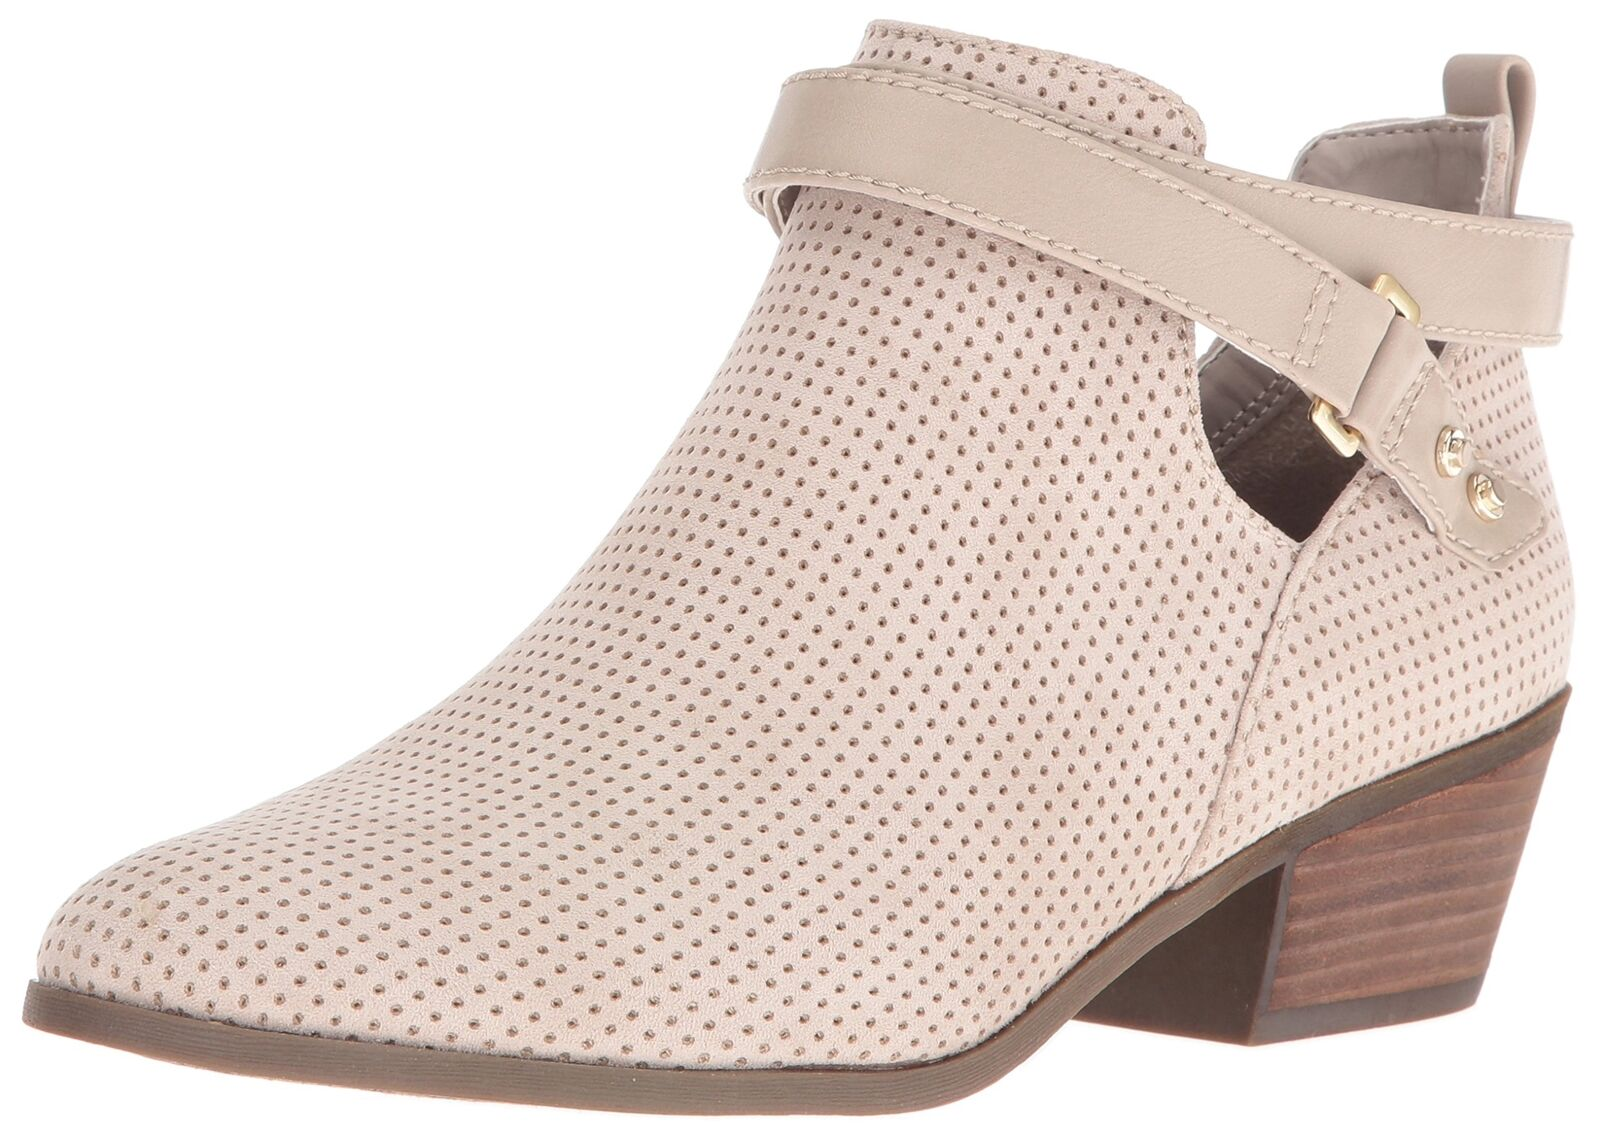 Dr. Dr. Dr. Scholl's shoes Women's Baxter Ankle Bootie Taupe Perforated 7.5 M US 1d815e